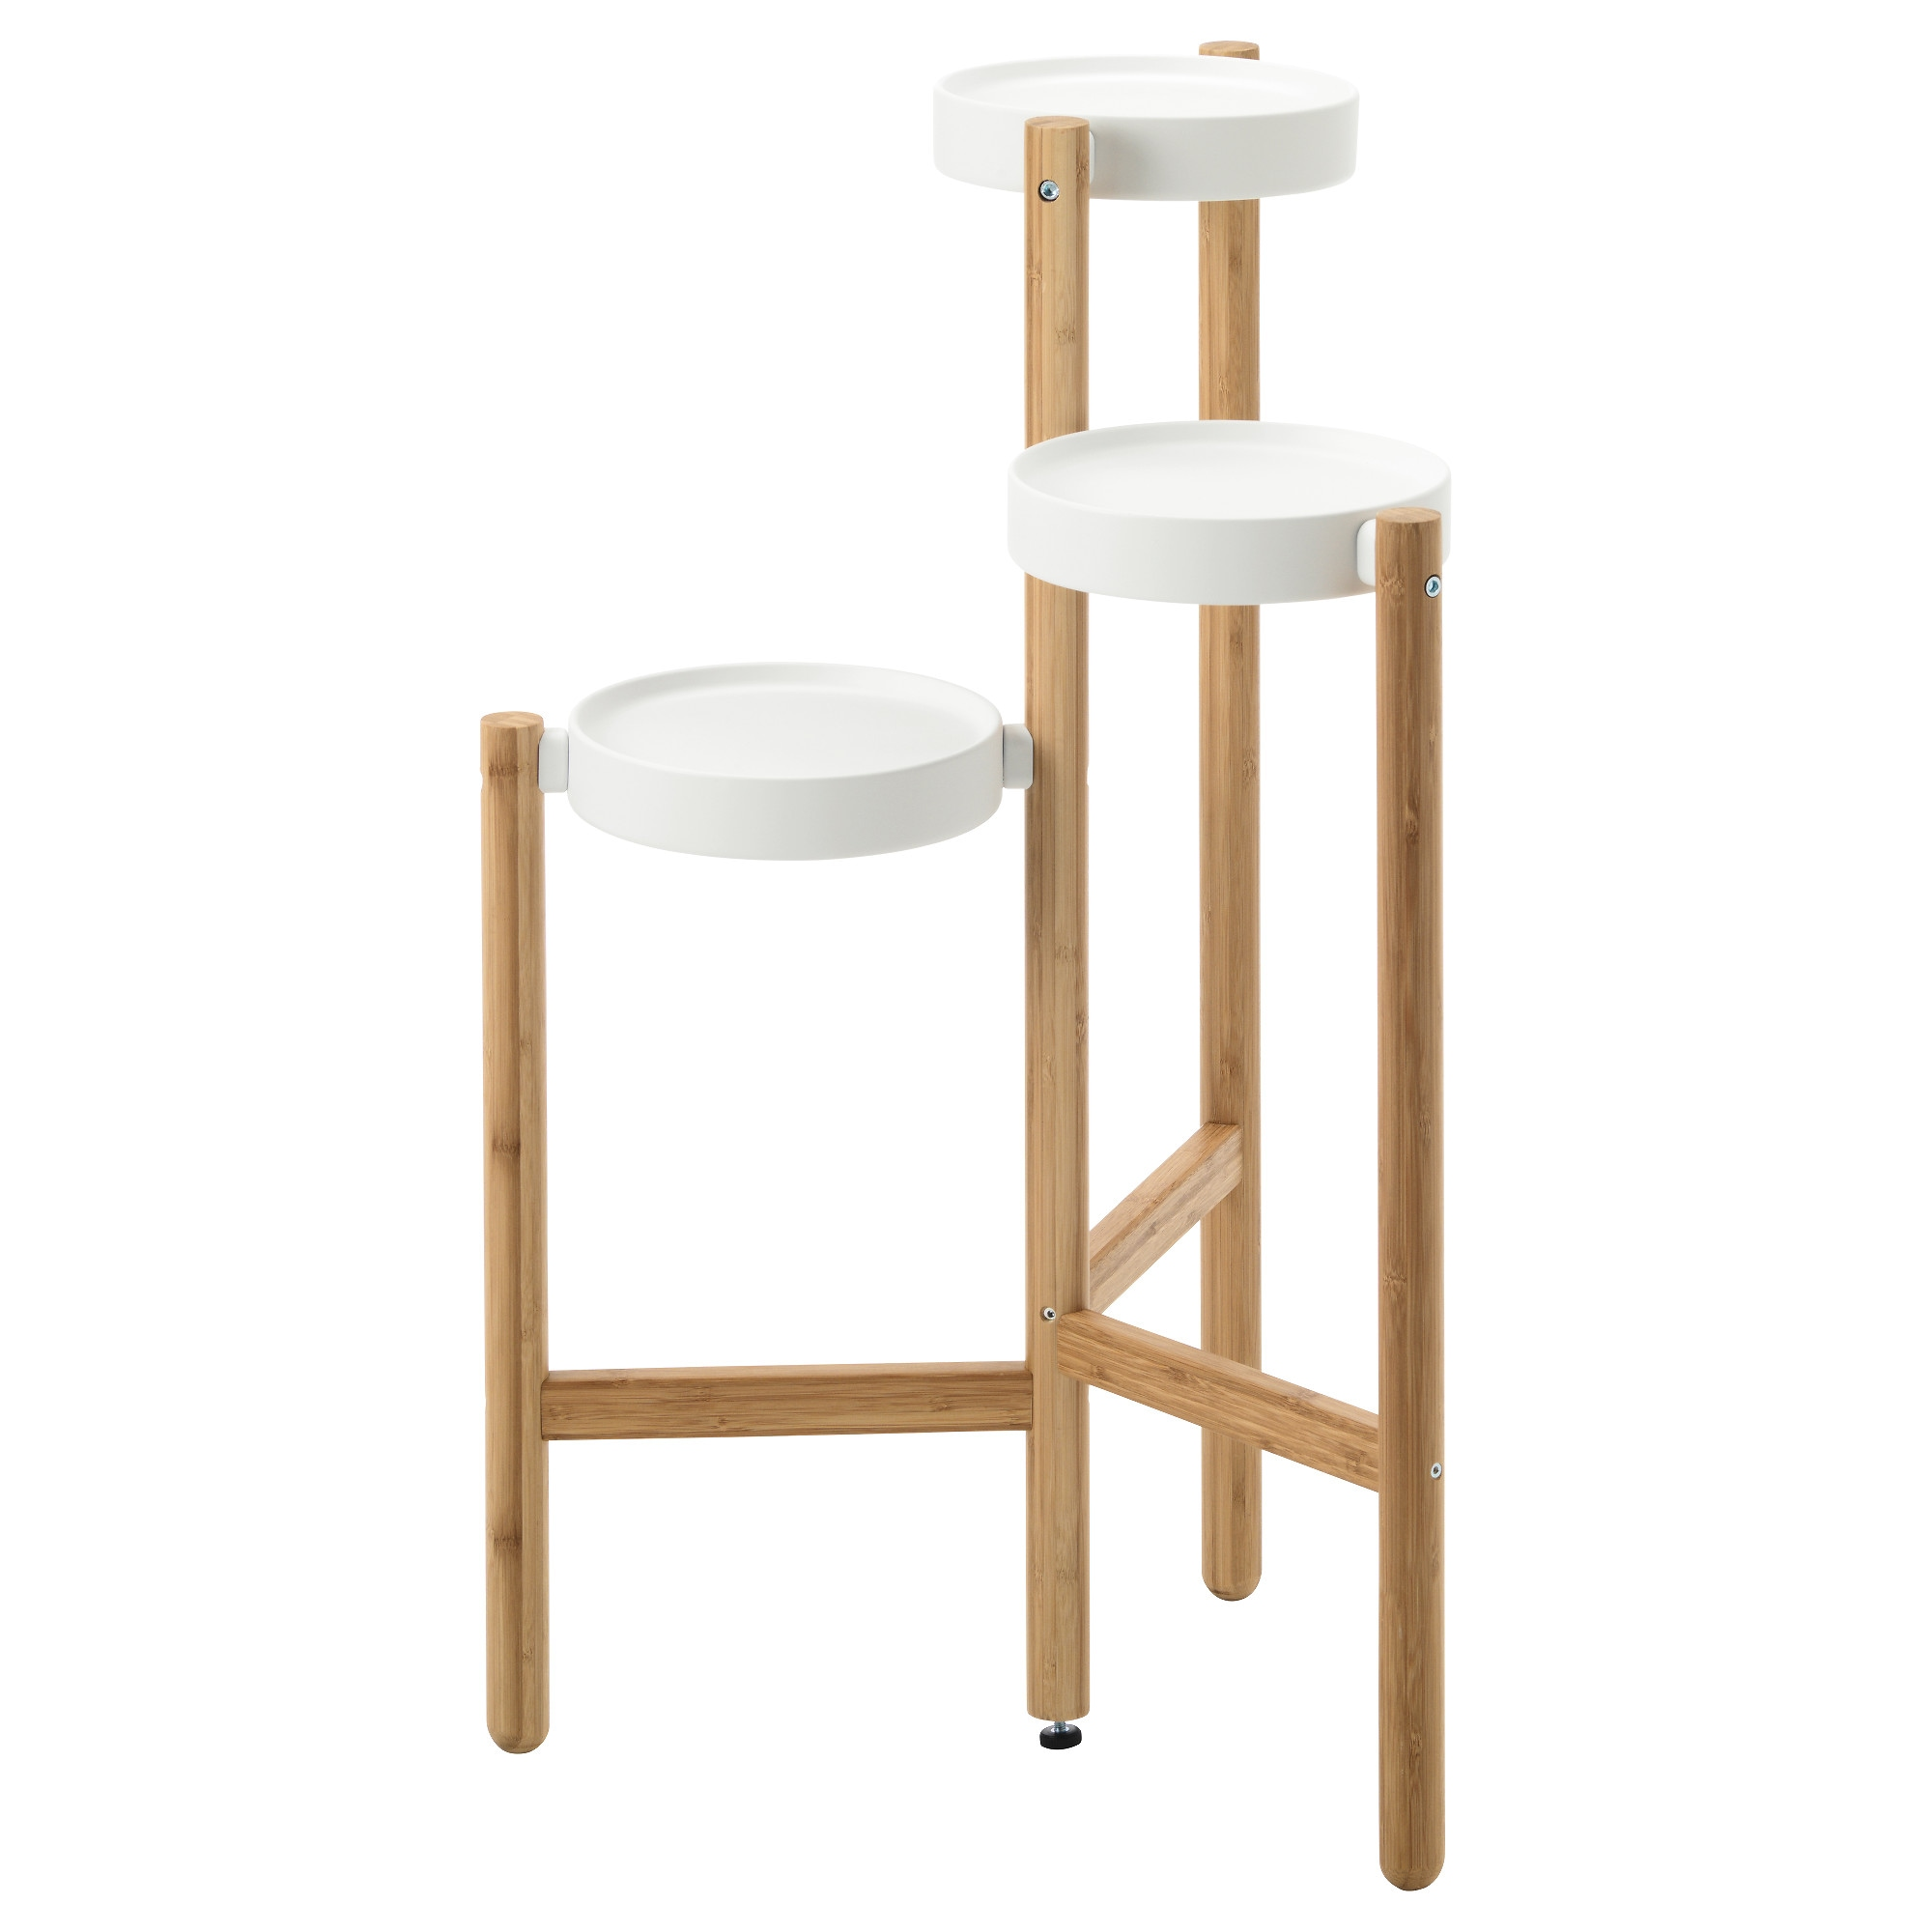 Design Ikea Plant Stand satsumas plant stand ikea 2017 11 25t0400 0800